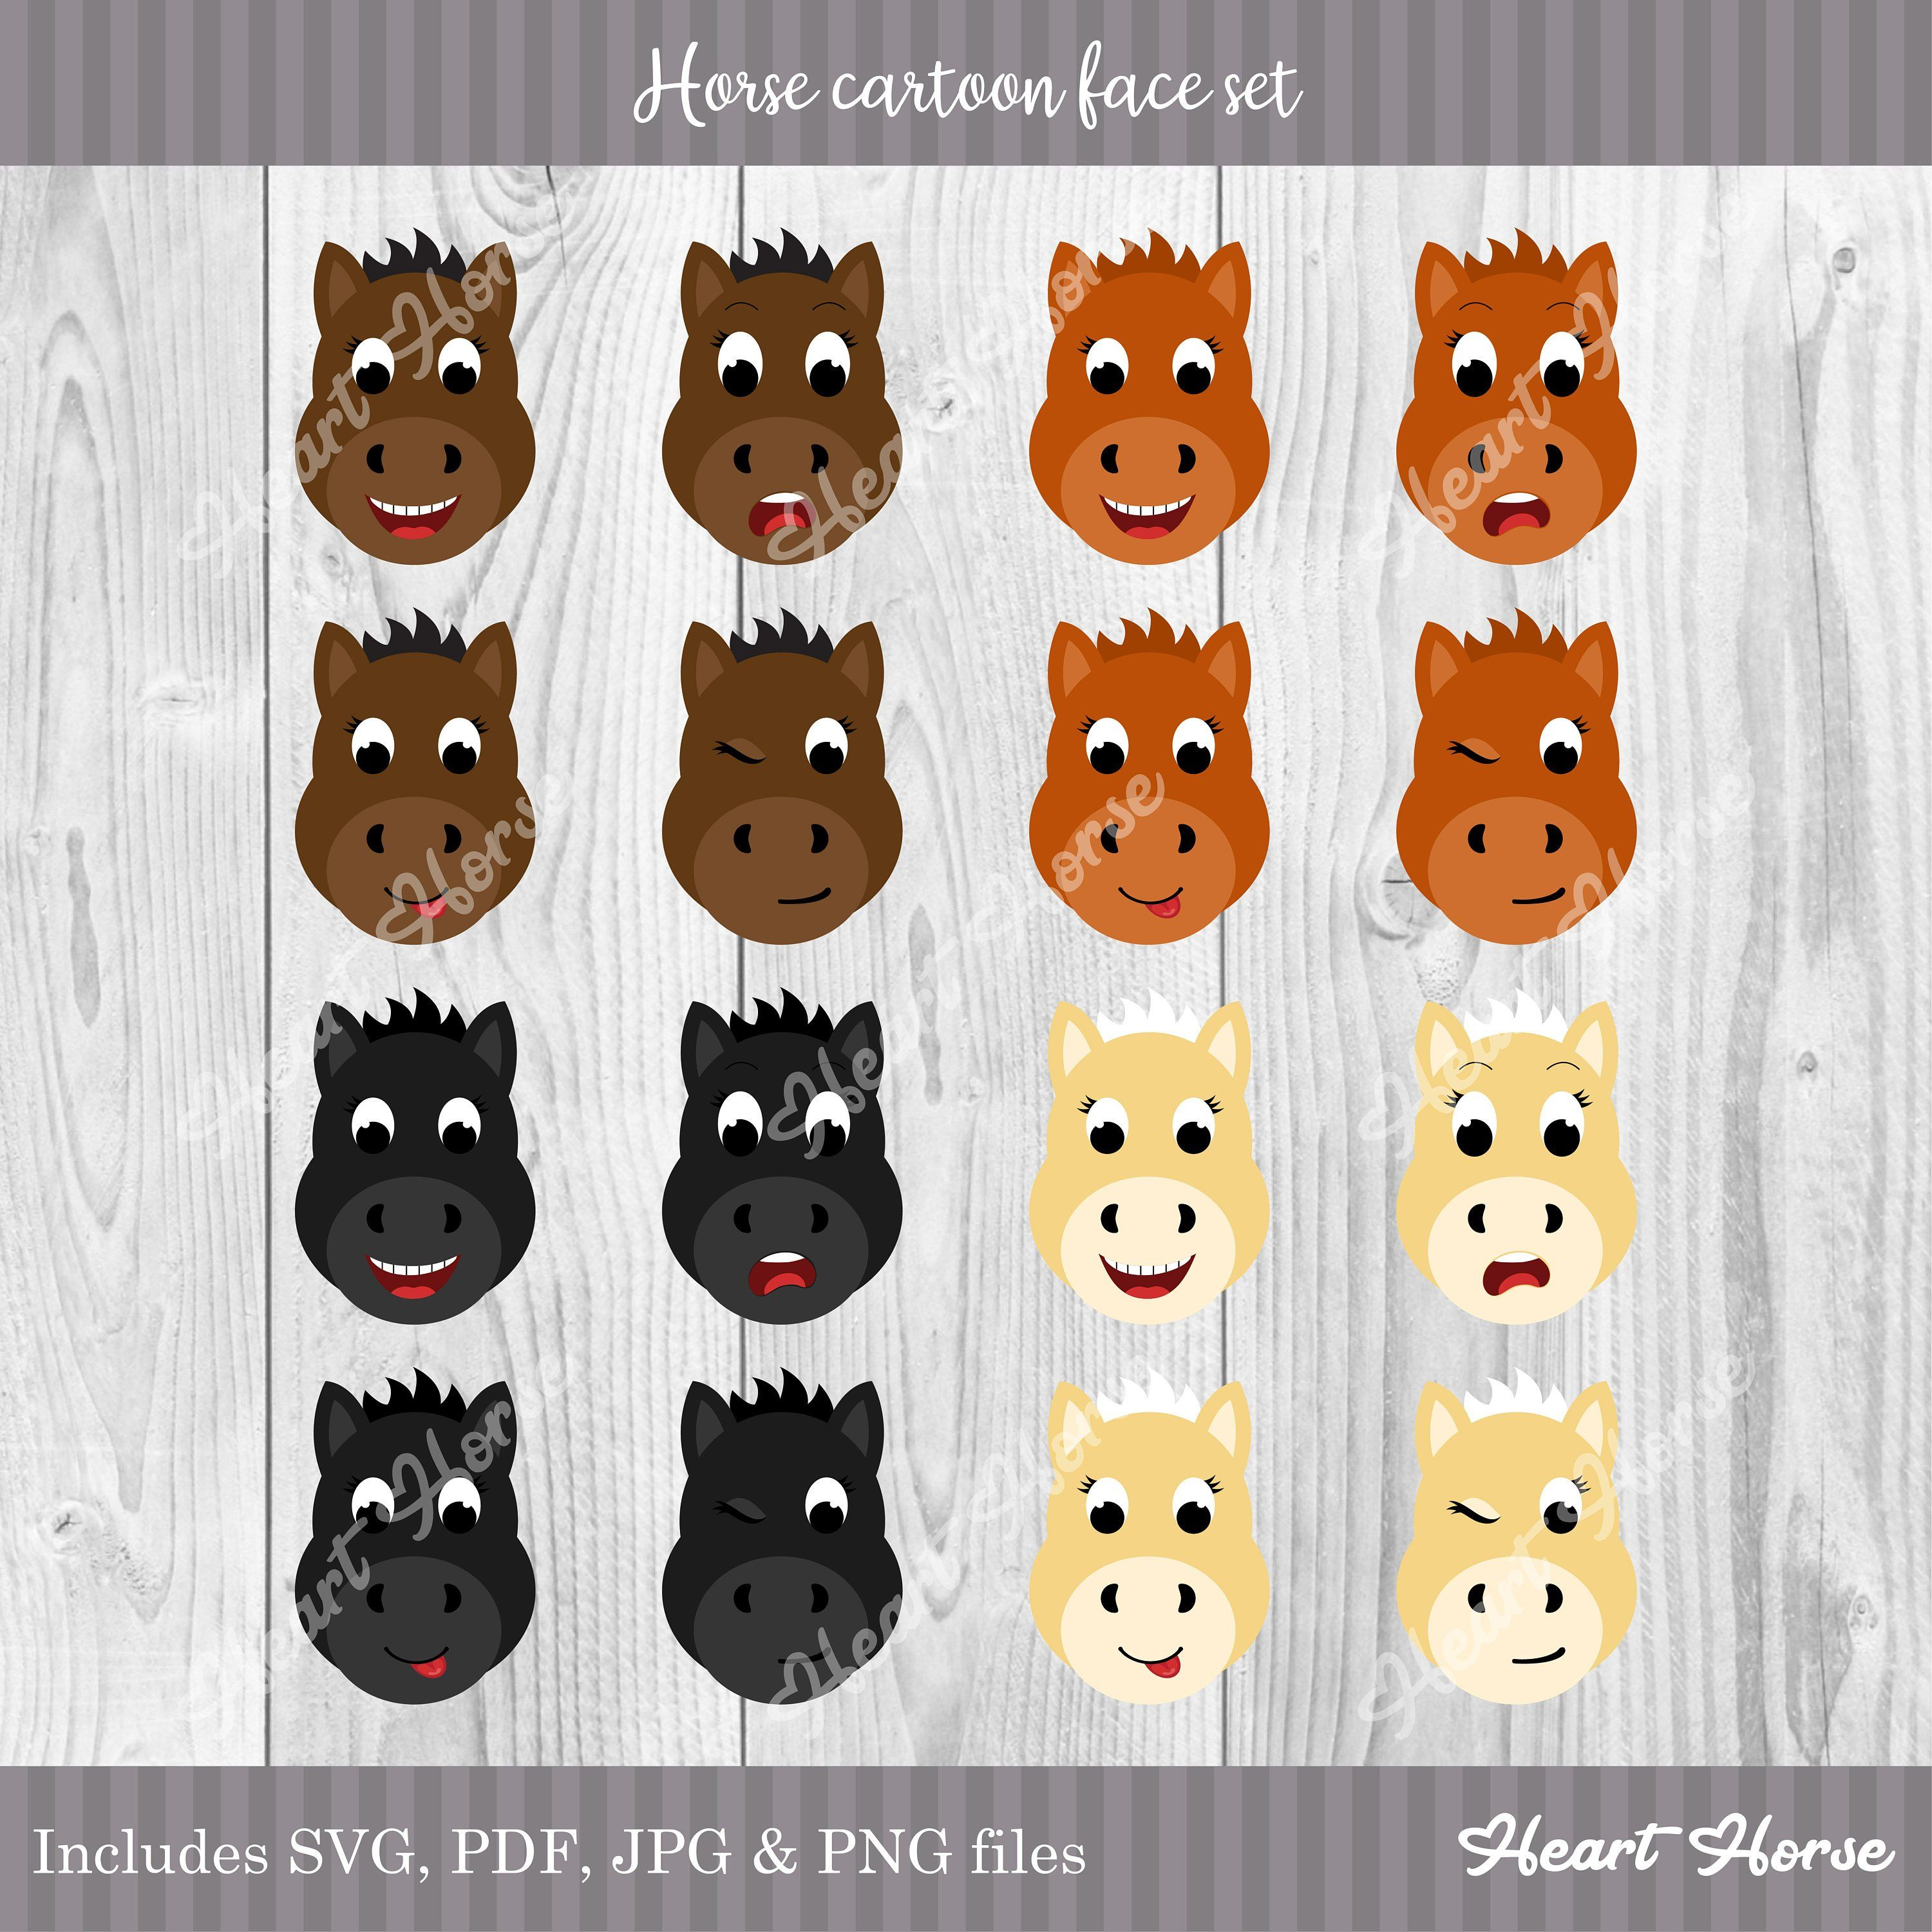 Pin By Vanessa Aspin On Painting Horse Cartoon Horse Face Animal Clipart